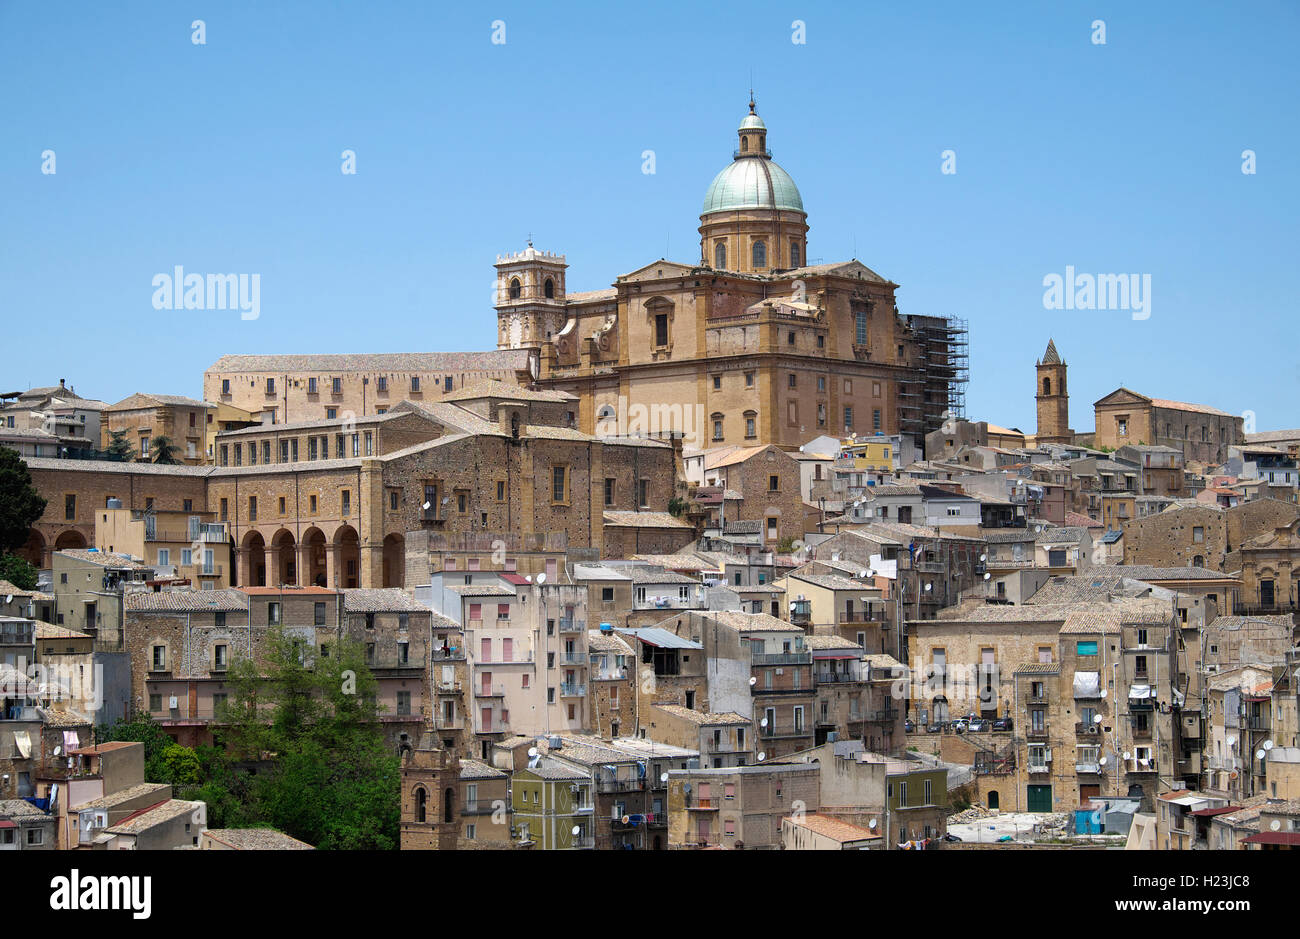 Cathedral and historic center of Piazza Armerina, Sicily, Italy Stock Photo